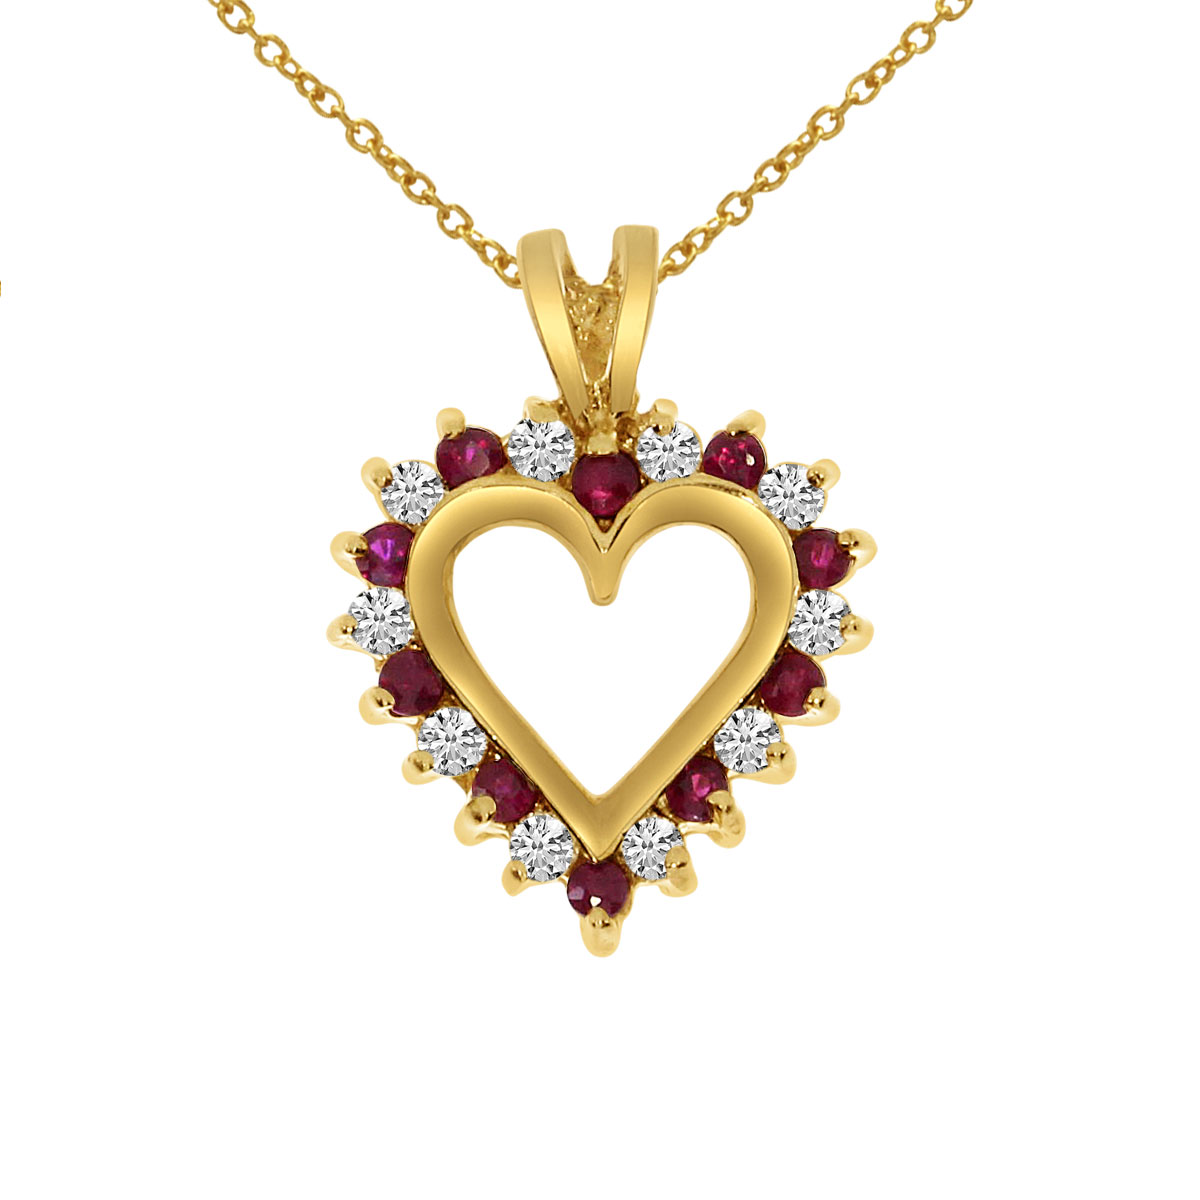 14k yellow gold ruby and diamond heart shaped pendant with 18 chain 14k yellow gold ruby and diamond heart shaped pendant with 18 chain ebay aloadofball Image collections